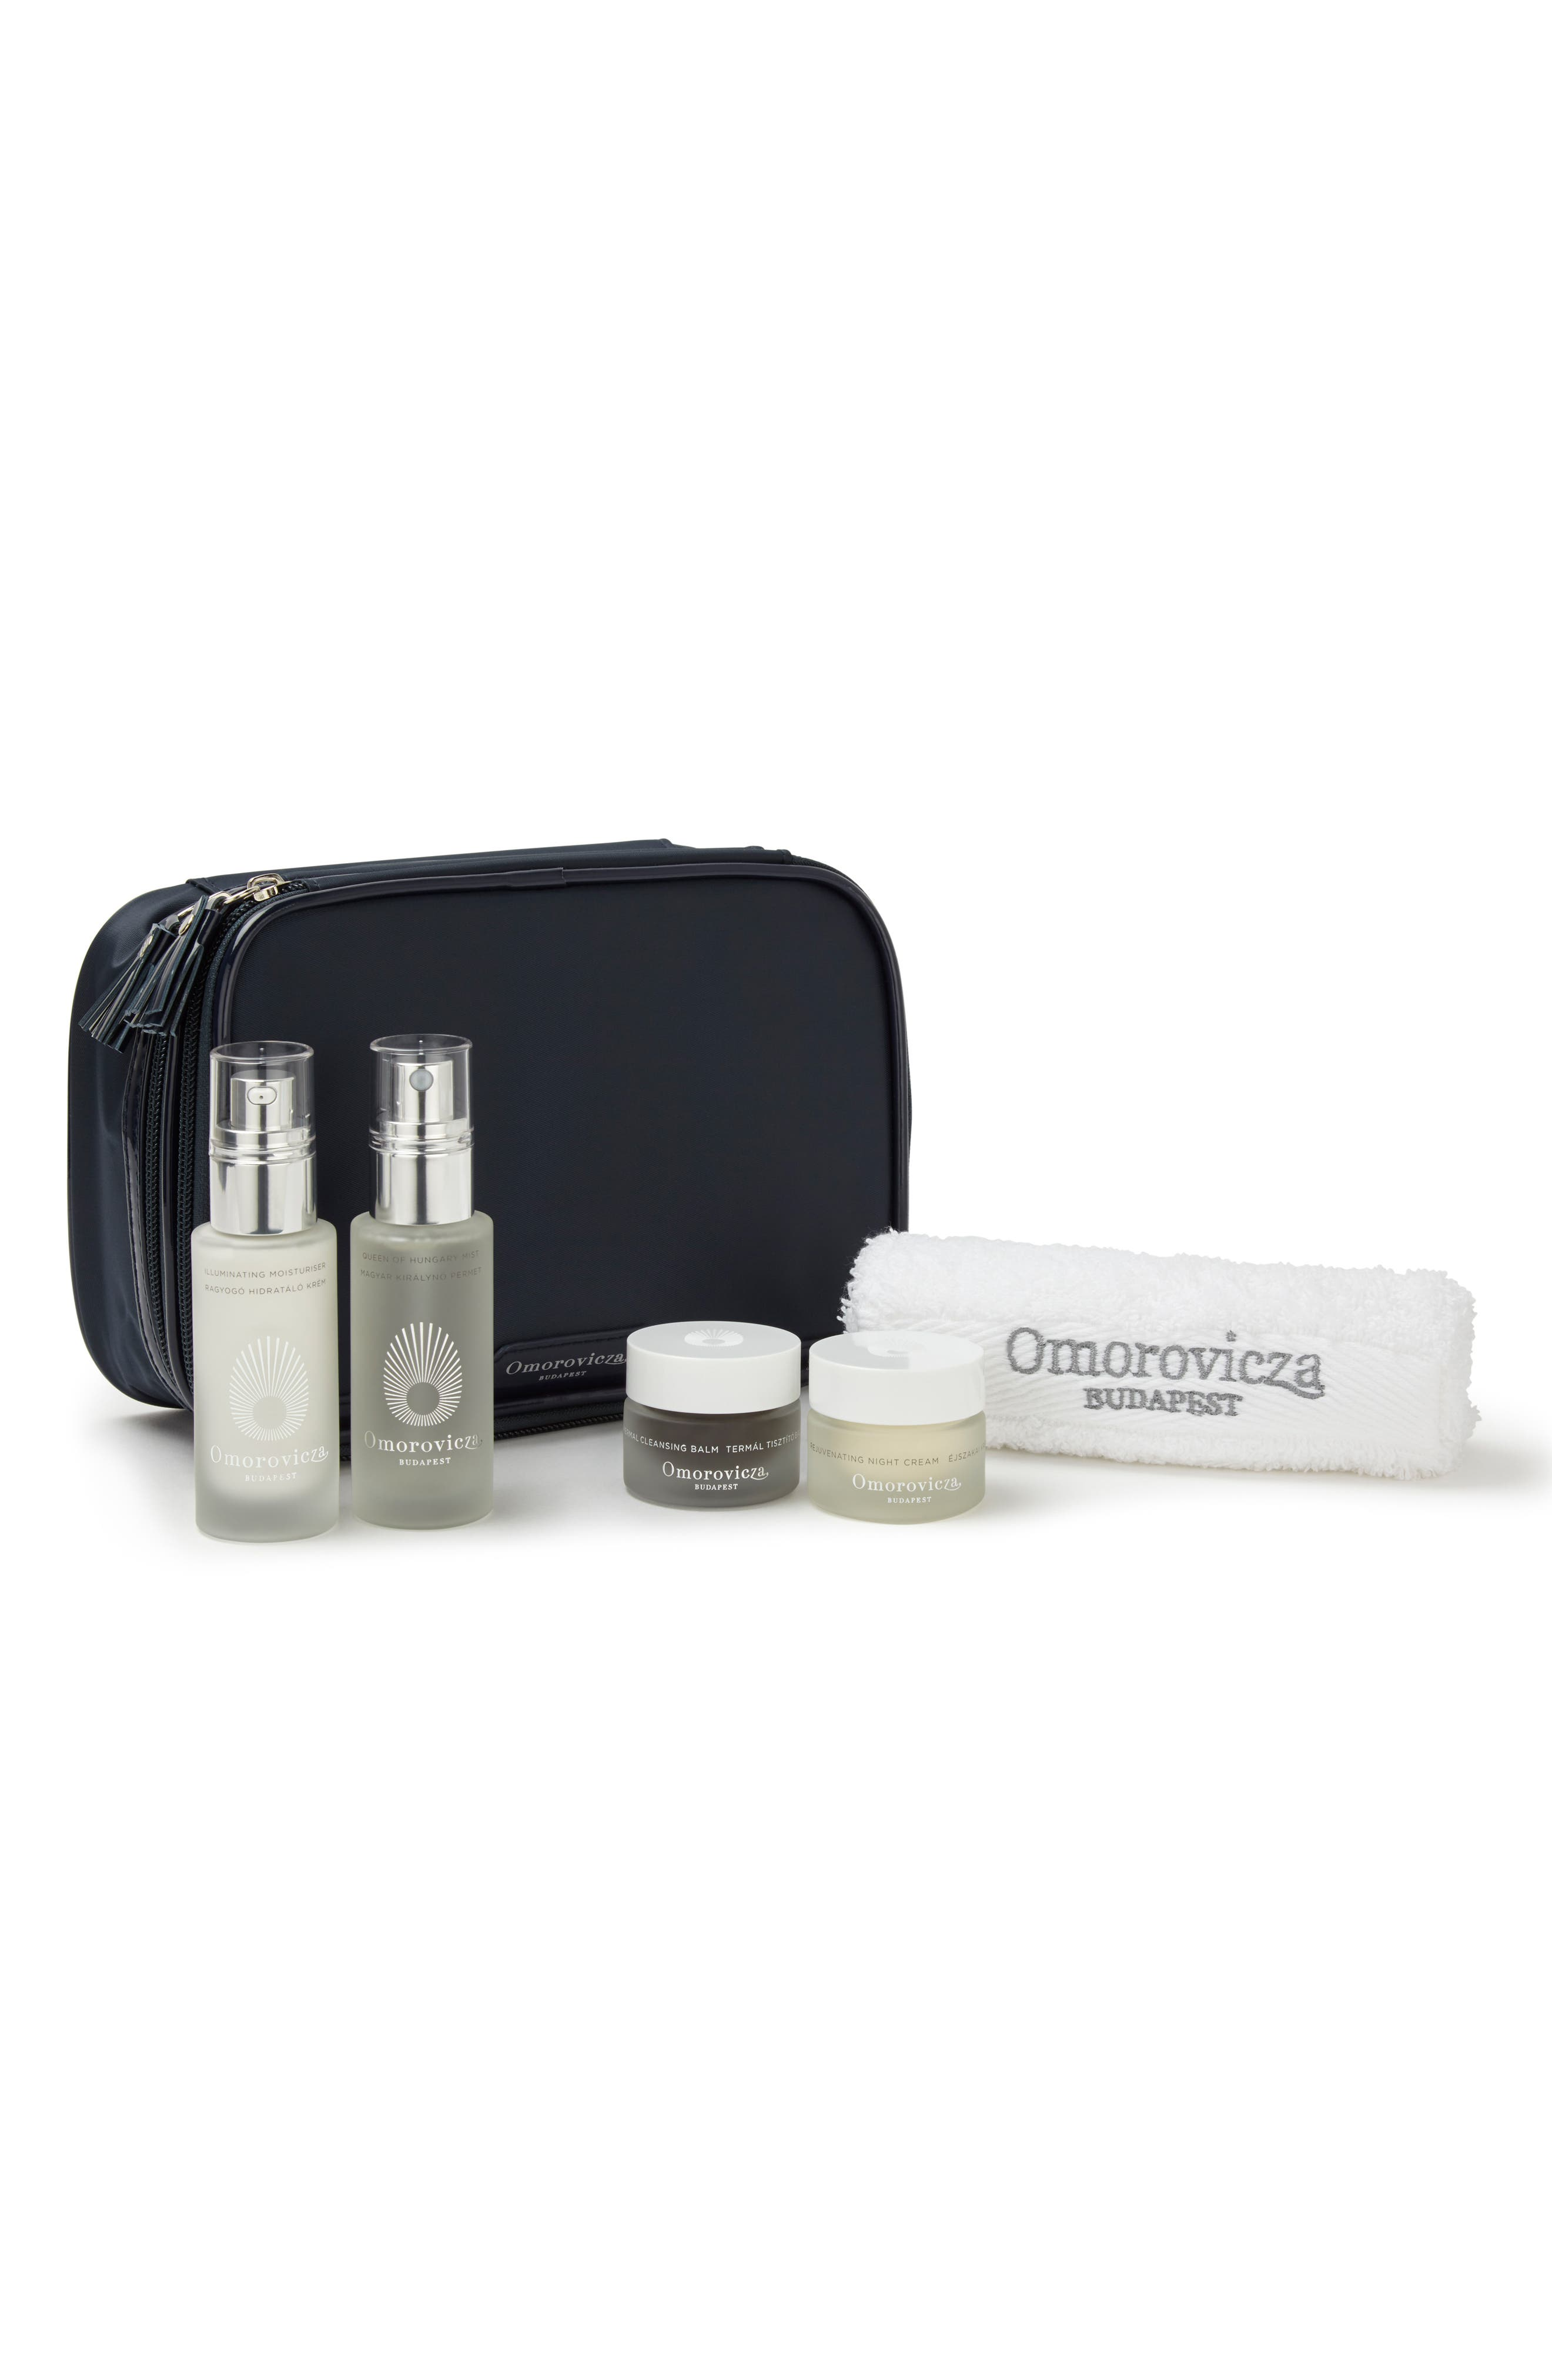 Alternate Image 1 Selected - Omorovicza Essentials Collection ($235 Value)